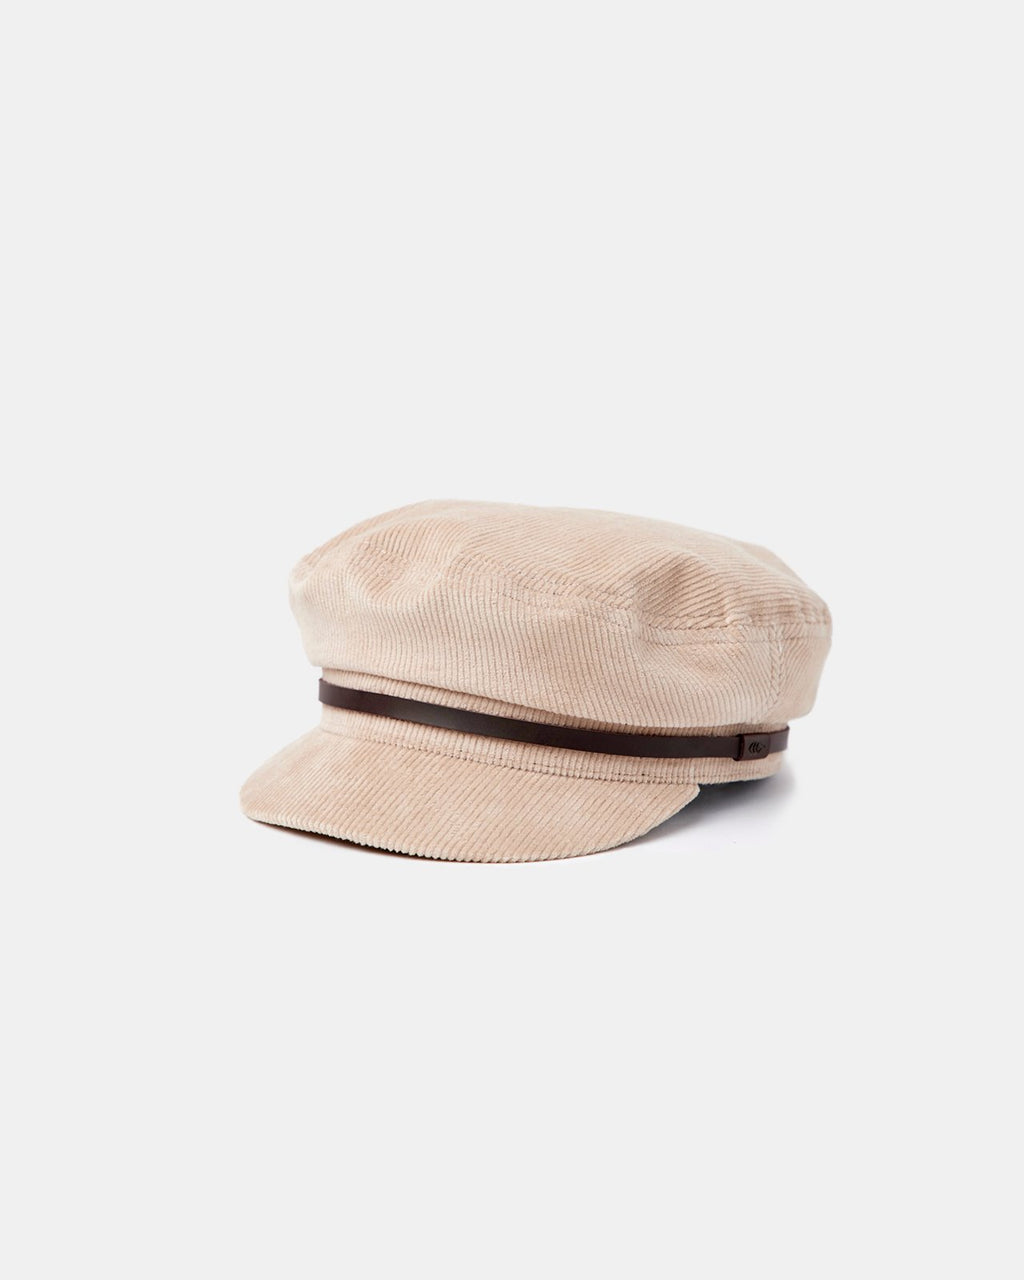 Will & Bear Baker Cap - Fawn